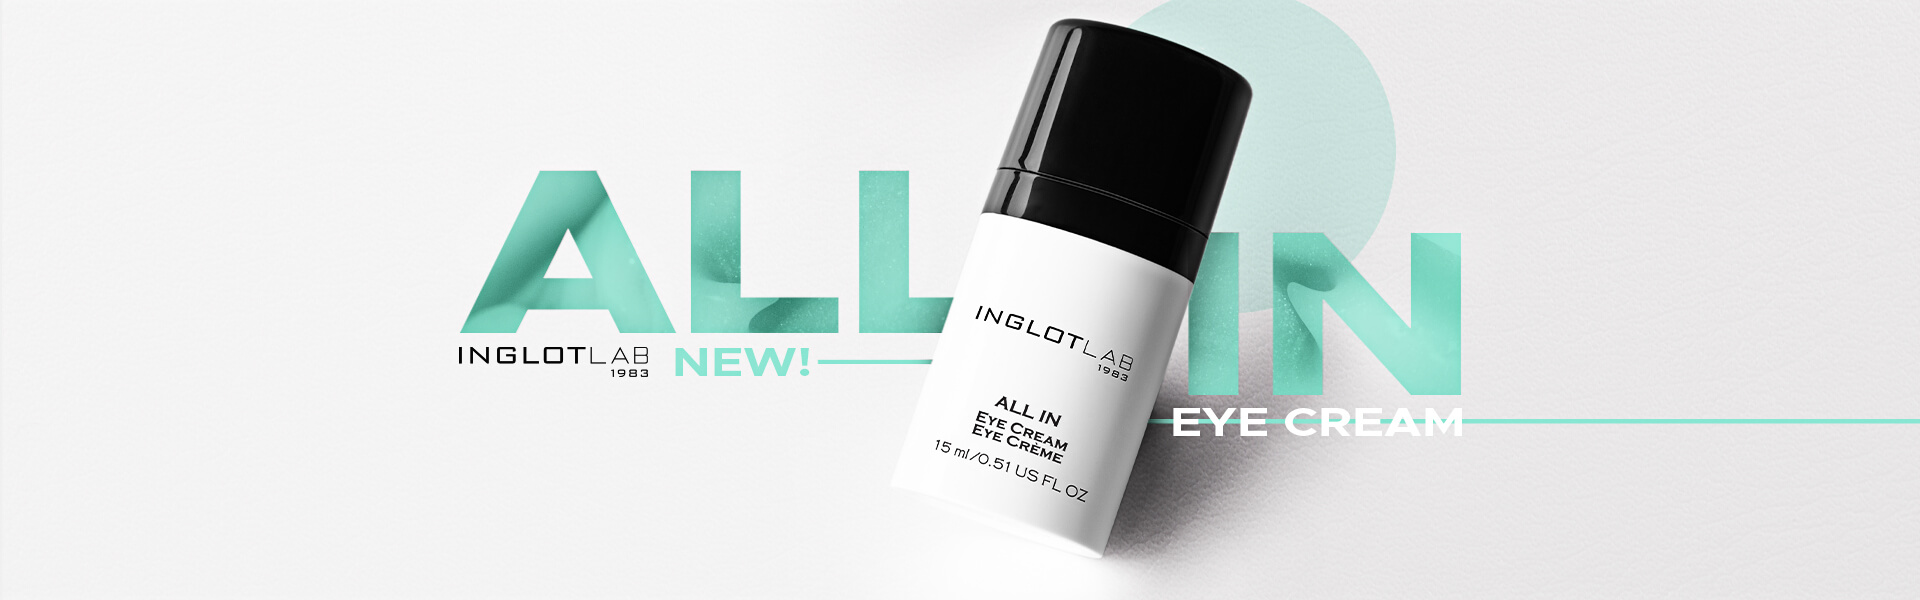 19-09-27-inglot-lab-eye-cream-new-3